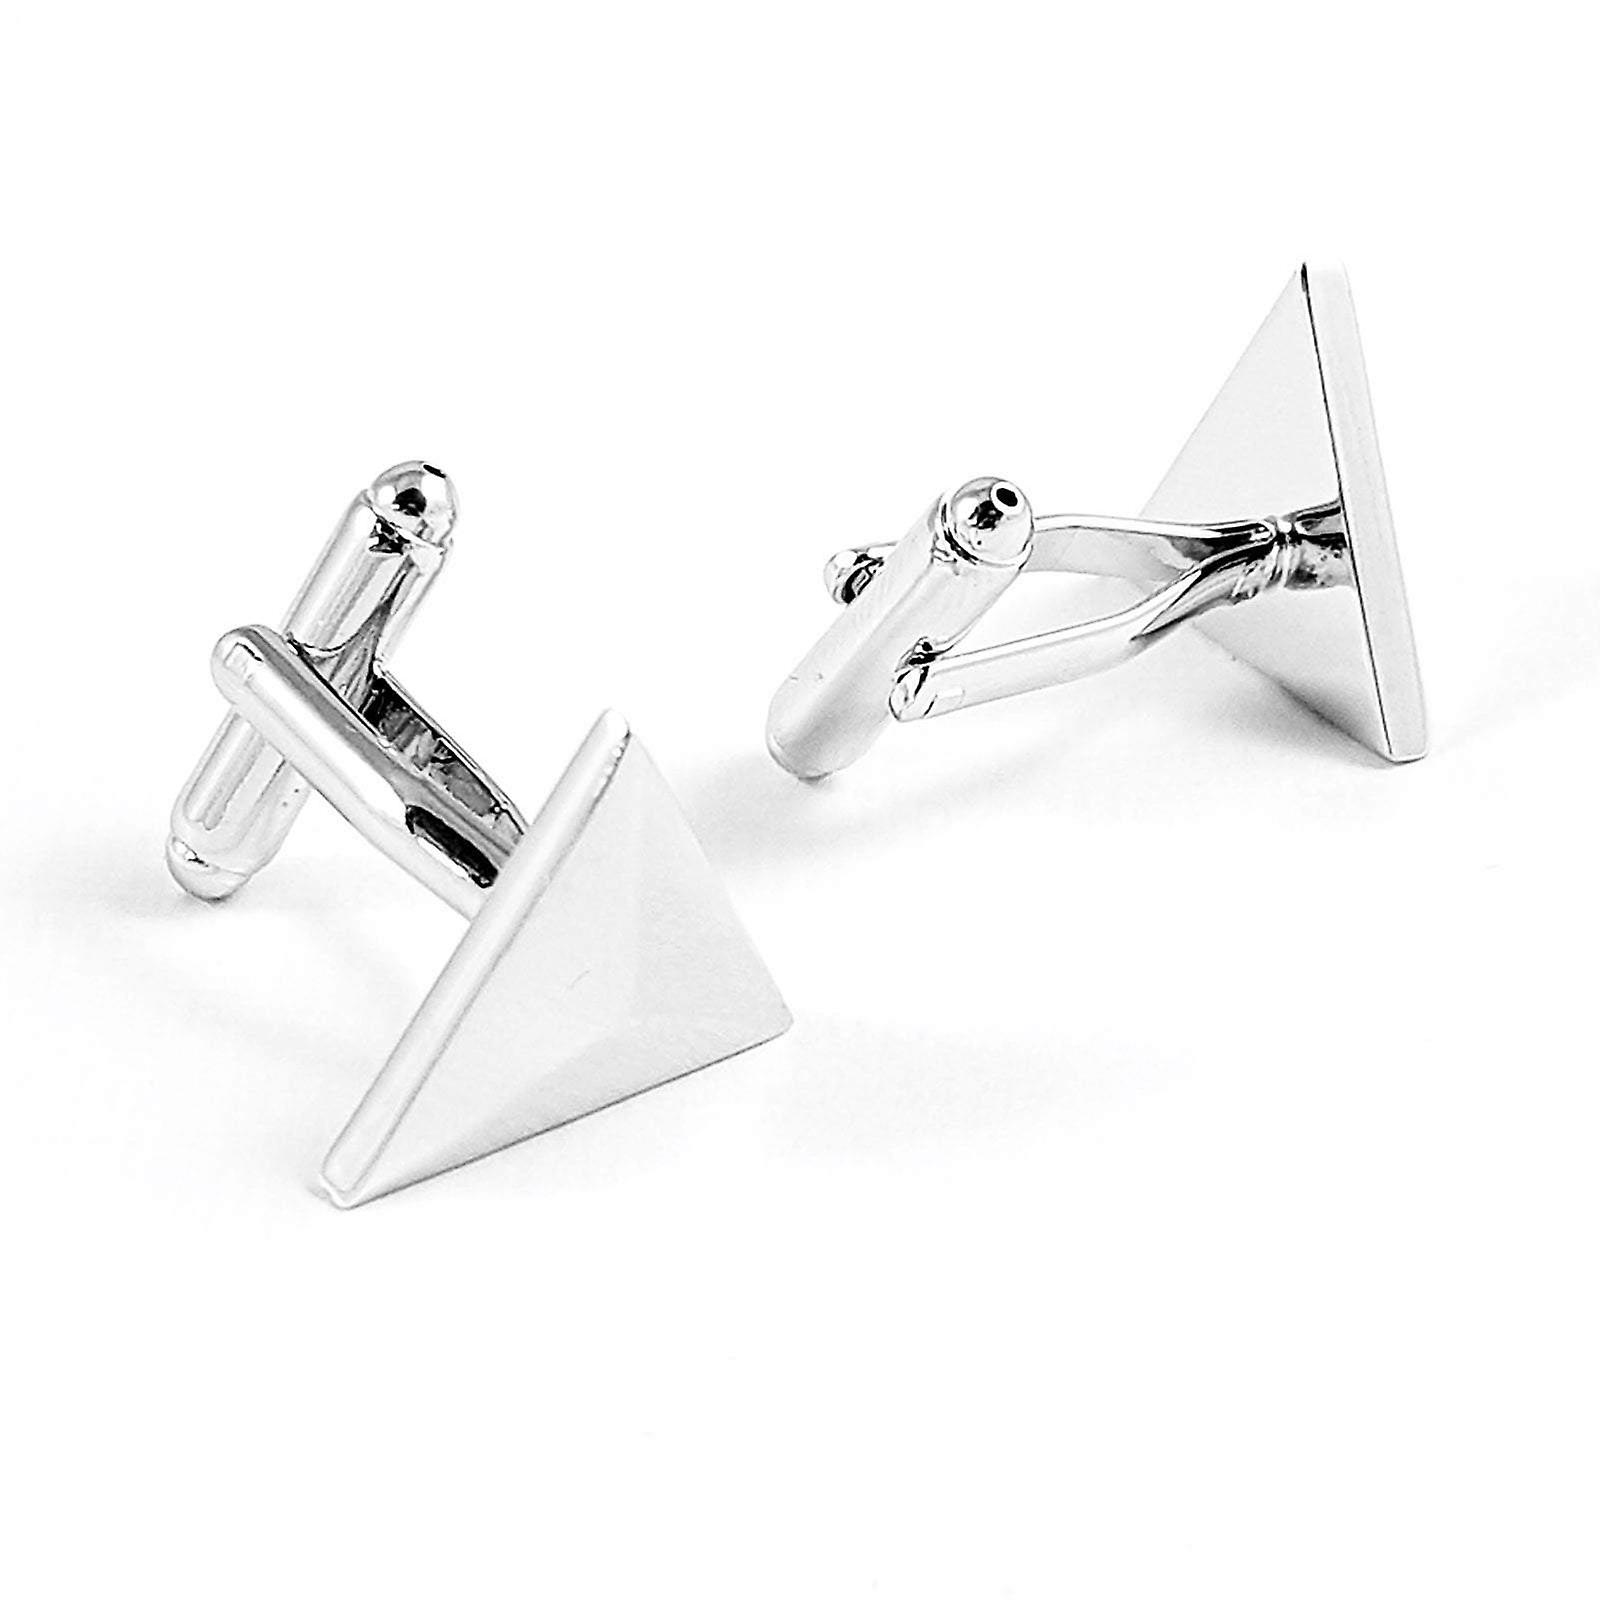 Triangle pyramid stainless steel wedding cuff links